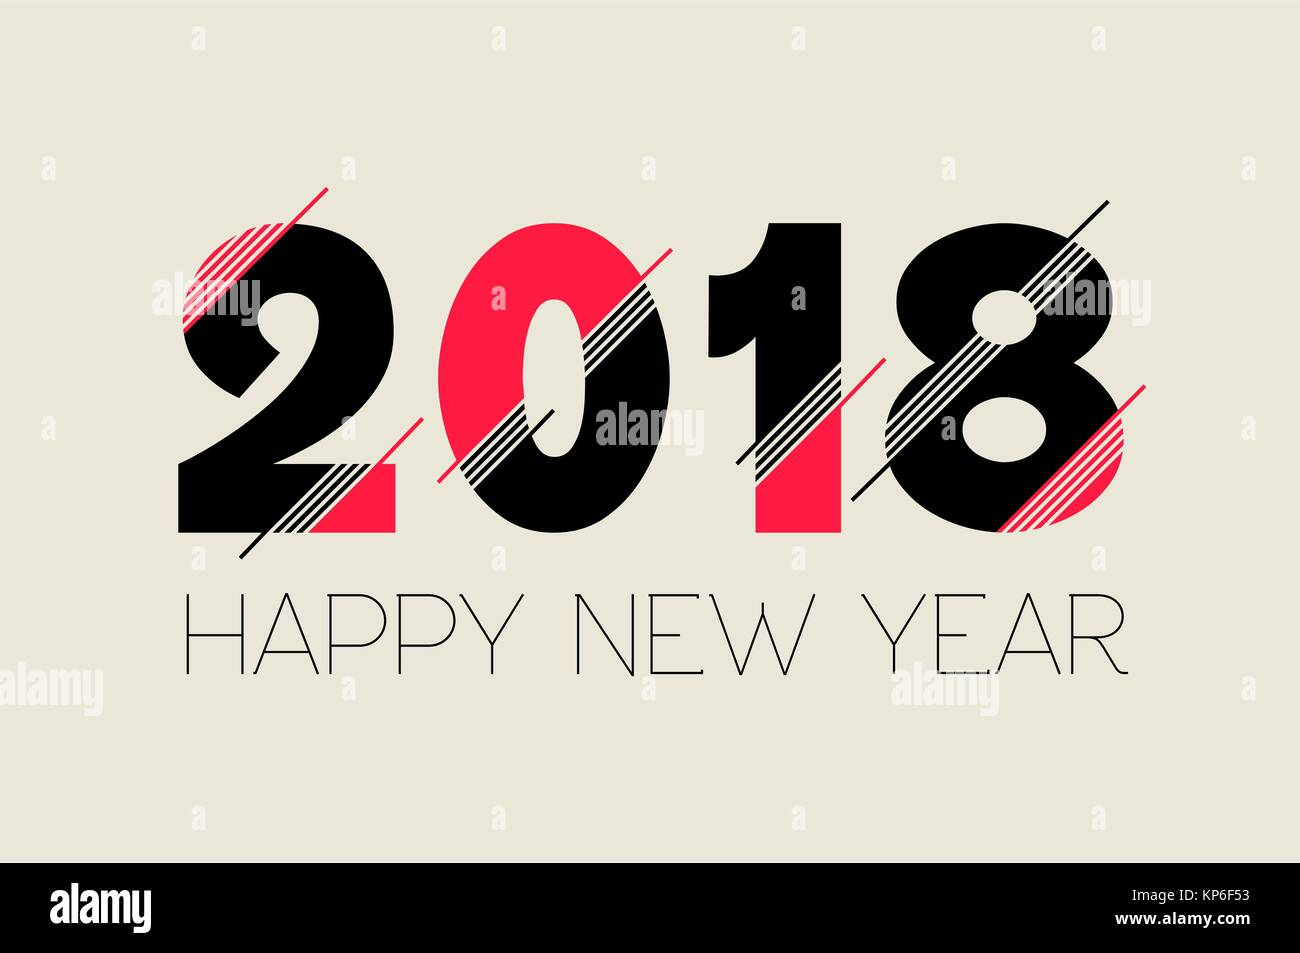 happy new year 2018 typography number design modern quote ideal for greeting card or holiday party invitation eps10 vector